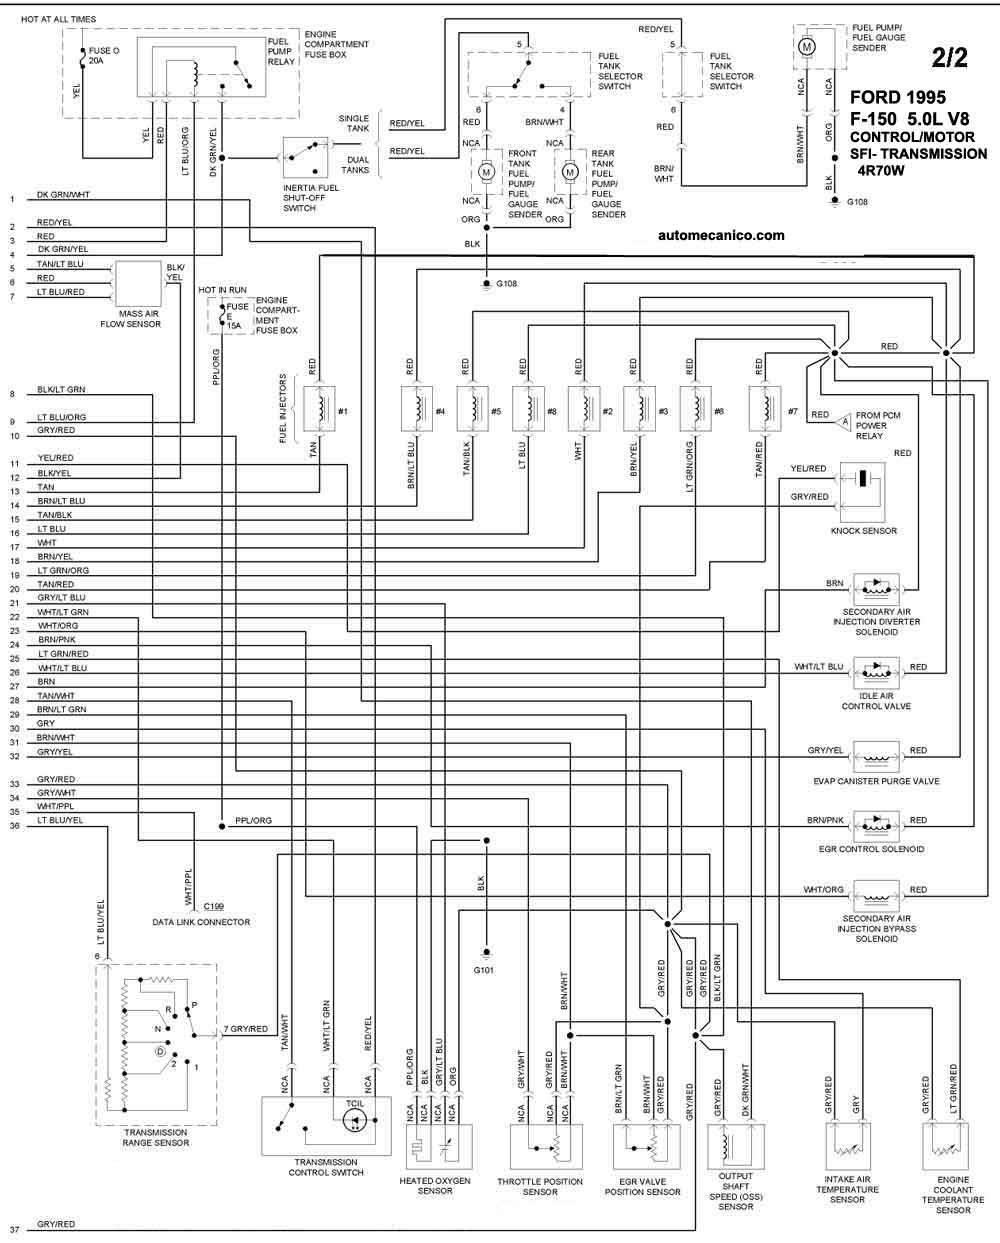 98 Expedition Radio Wire Diagram in addition Toyota T100 Engine Vacuum Diagram furthermore Diagrama Electrico De Ford 150 furthermore Ford Duraspark Wiring Diagram besides Honda 3 0 Firing Order Diagram. on discussion c5237 ds553722